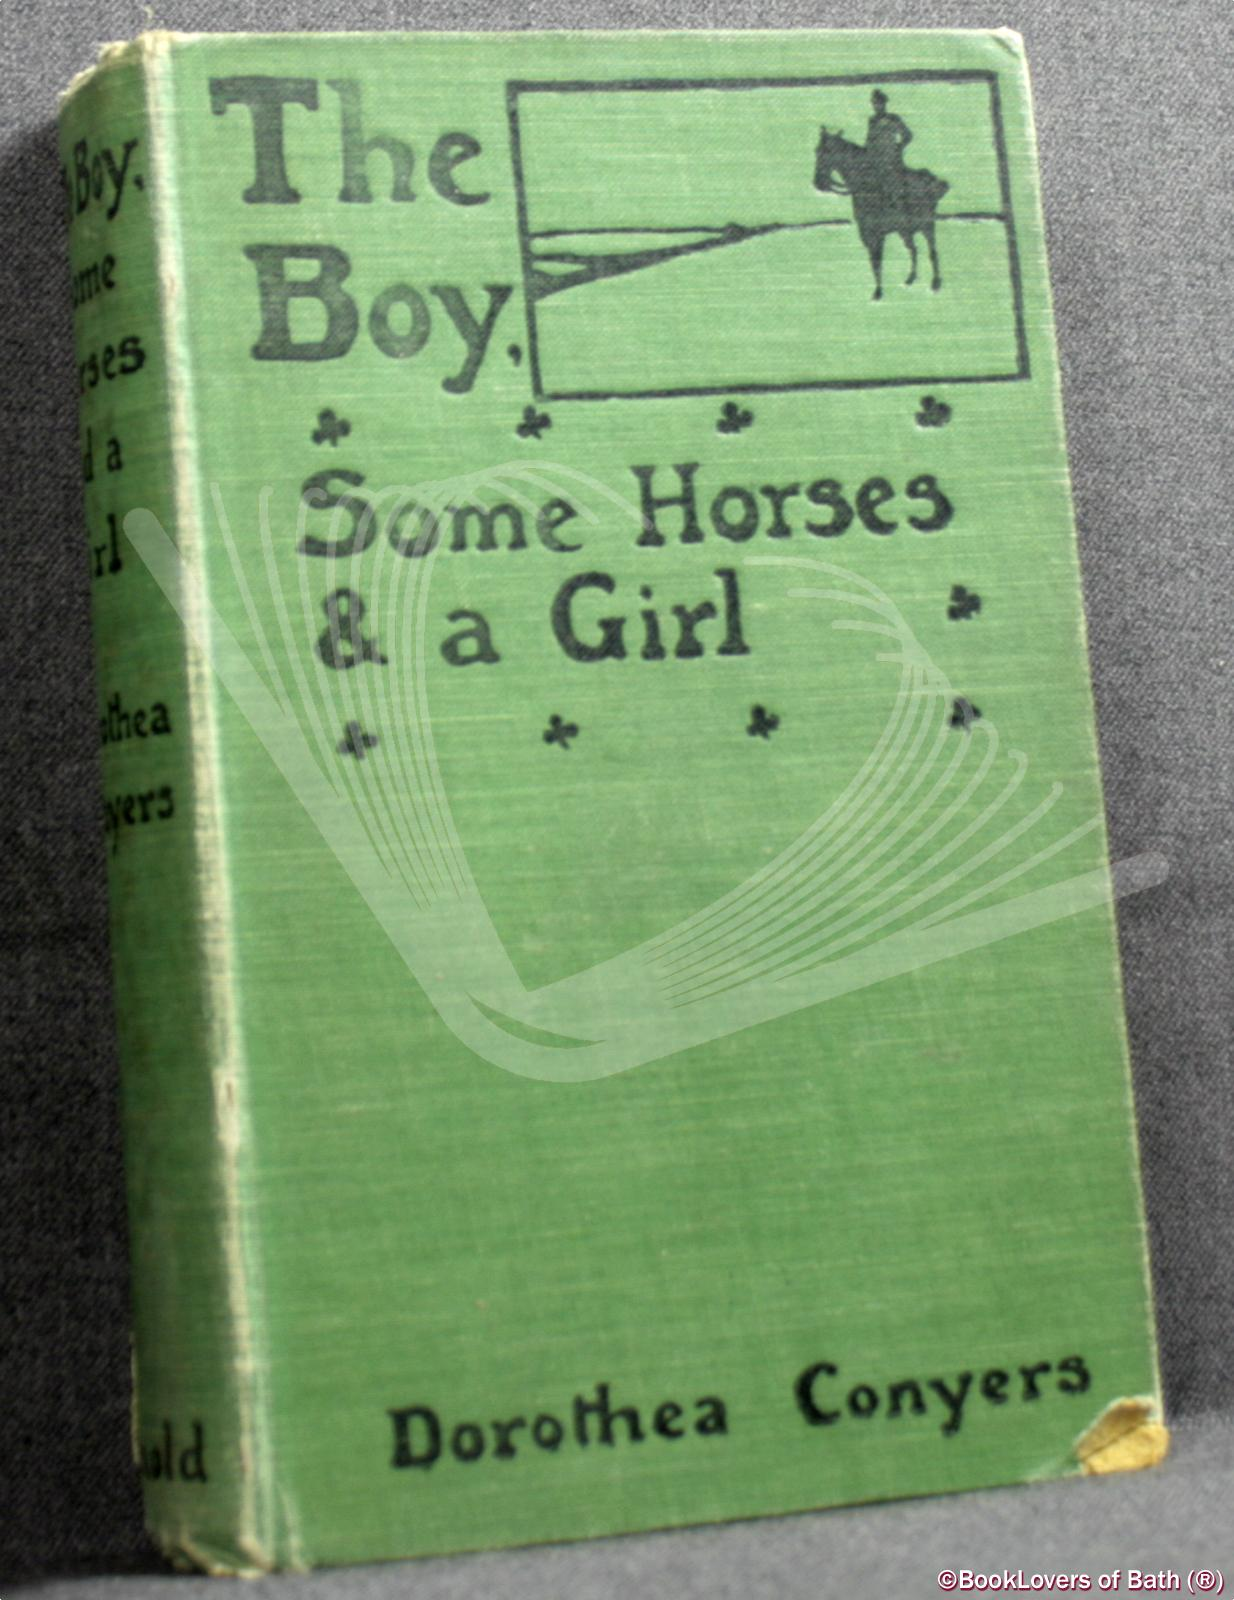 The Boy, some Horses, and a Girl: A Tale of an Irish Trip - Dorothea Conyers